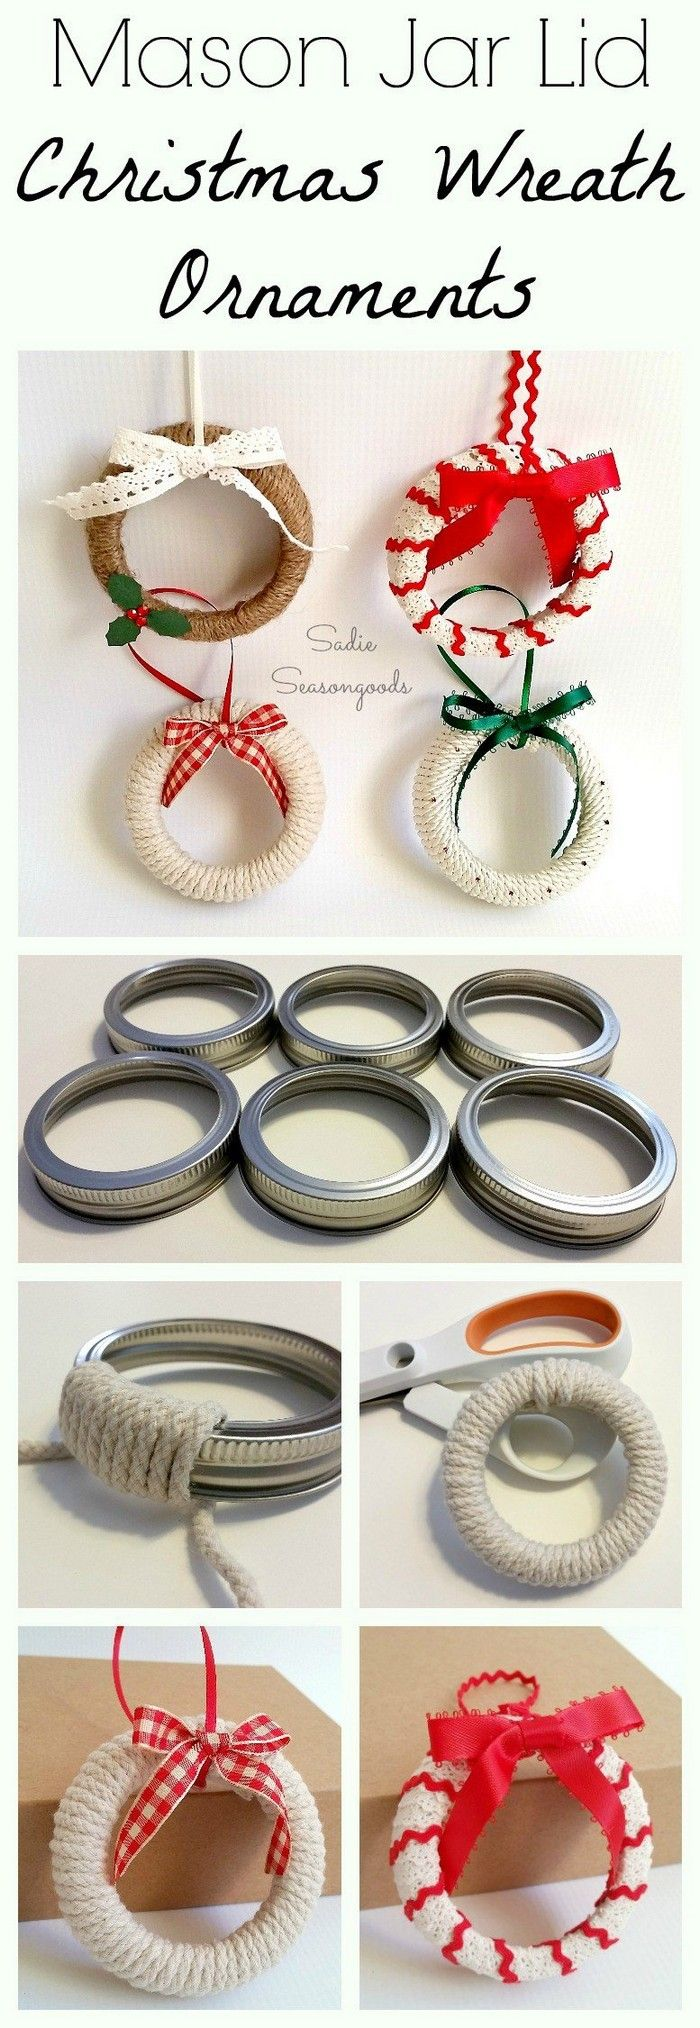 Mason Jar Lid Wreath Ornaments:Keeping in mind the importance ofeasy Christmas craftsI have made the collection of 25 interesting ideas to make easy Christmas crafts.